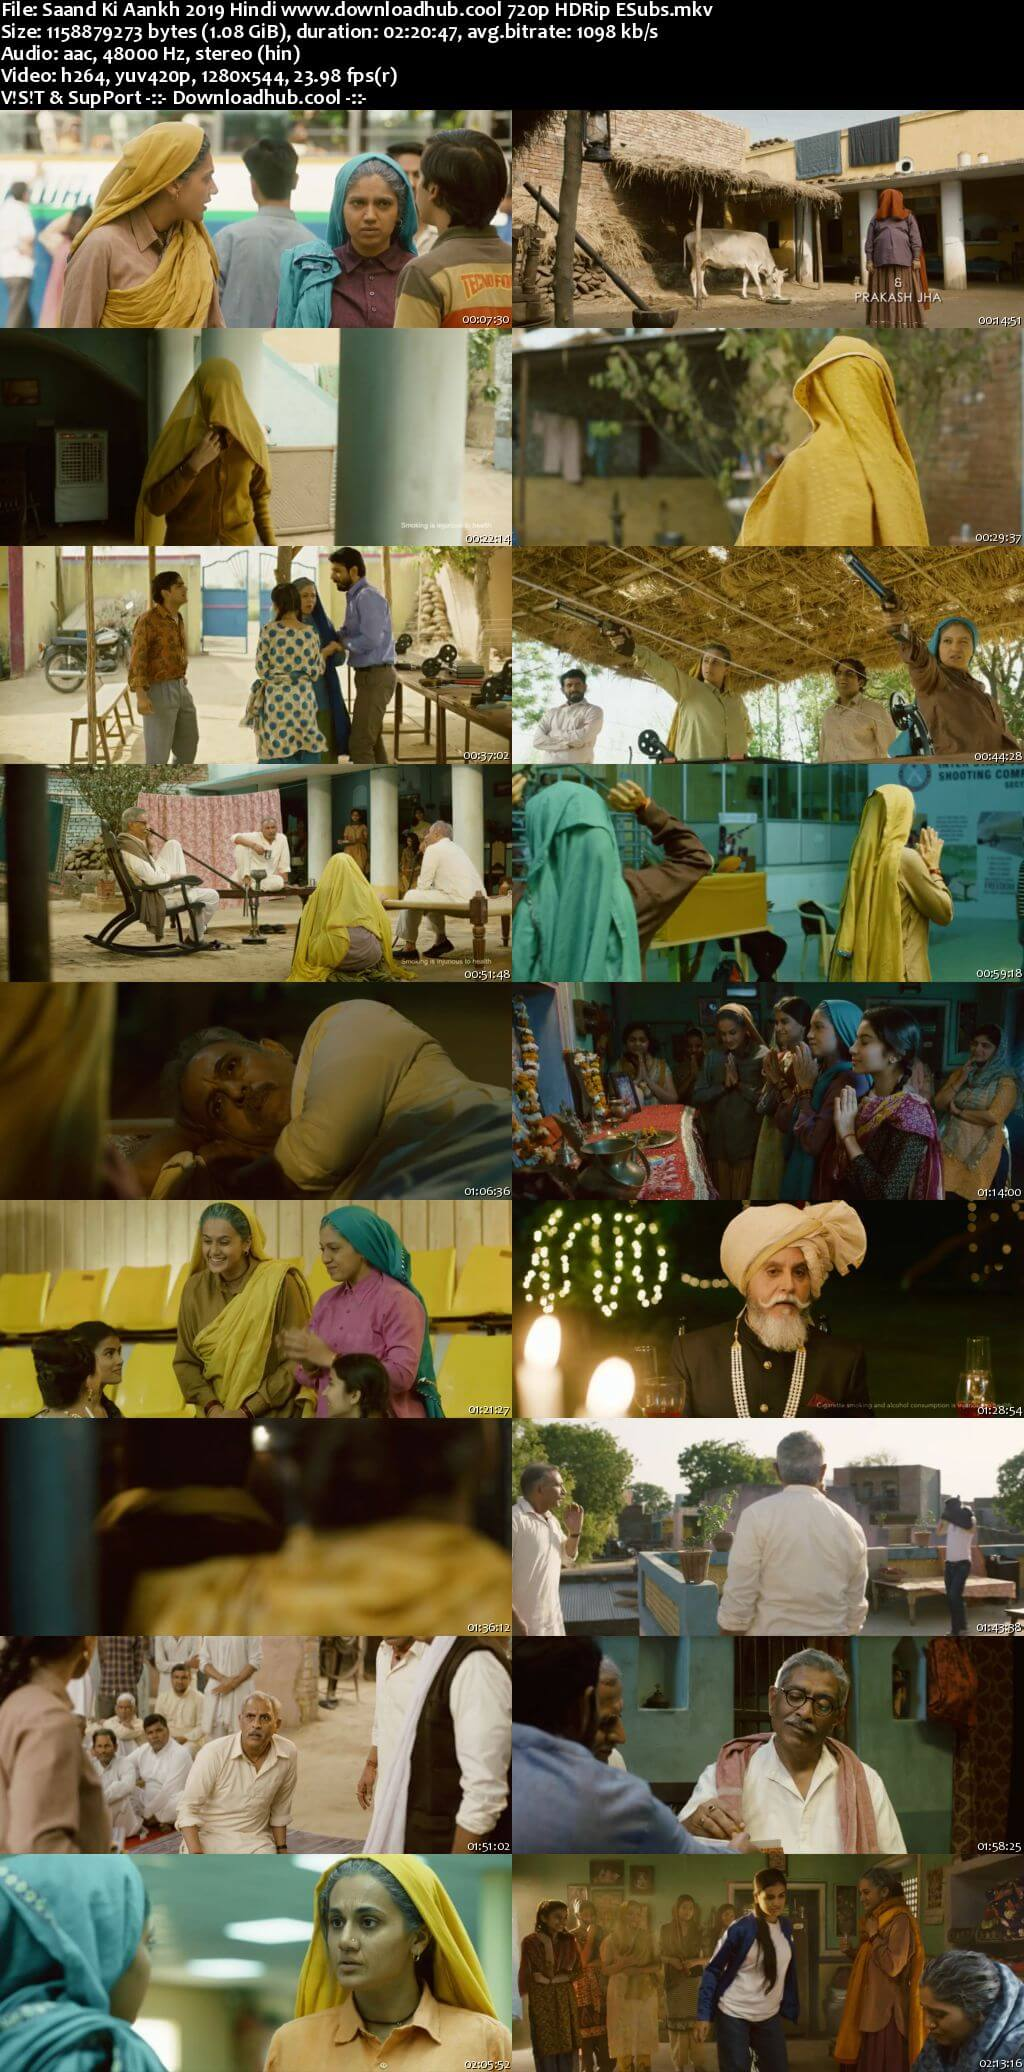 Saand Ki Aankh 2019 Hindi 720p HDRip ESubs